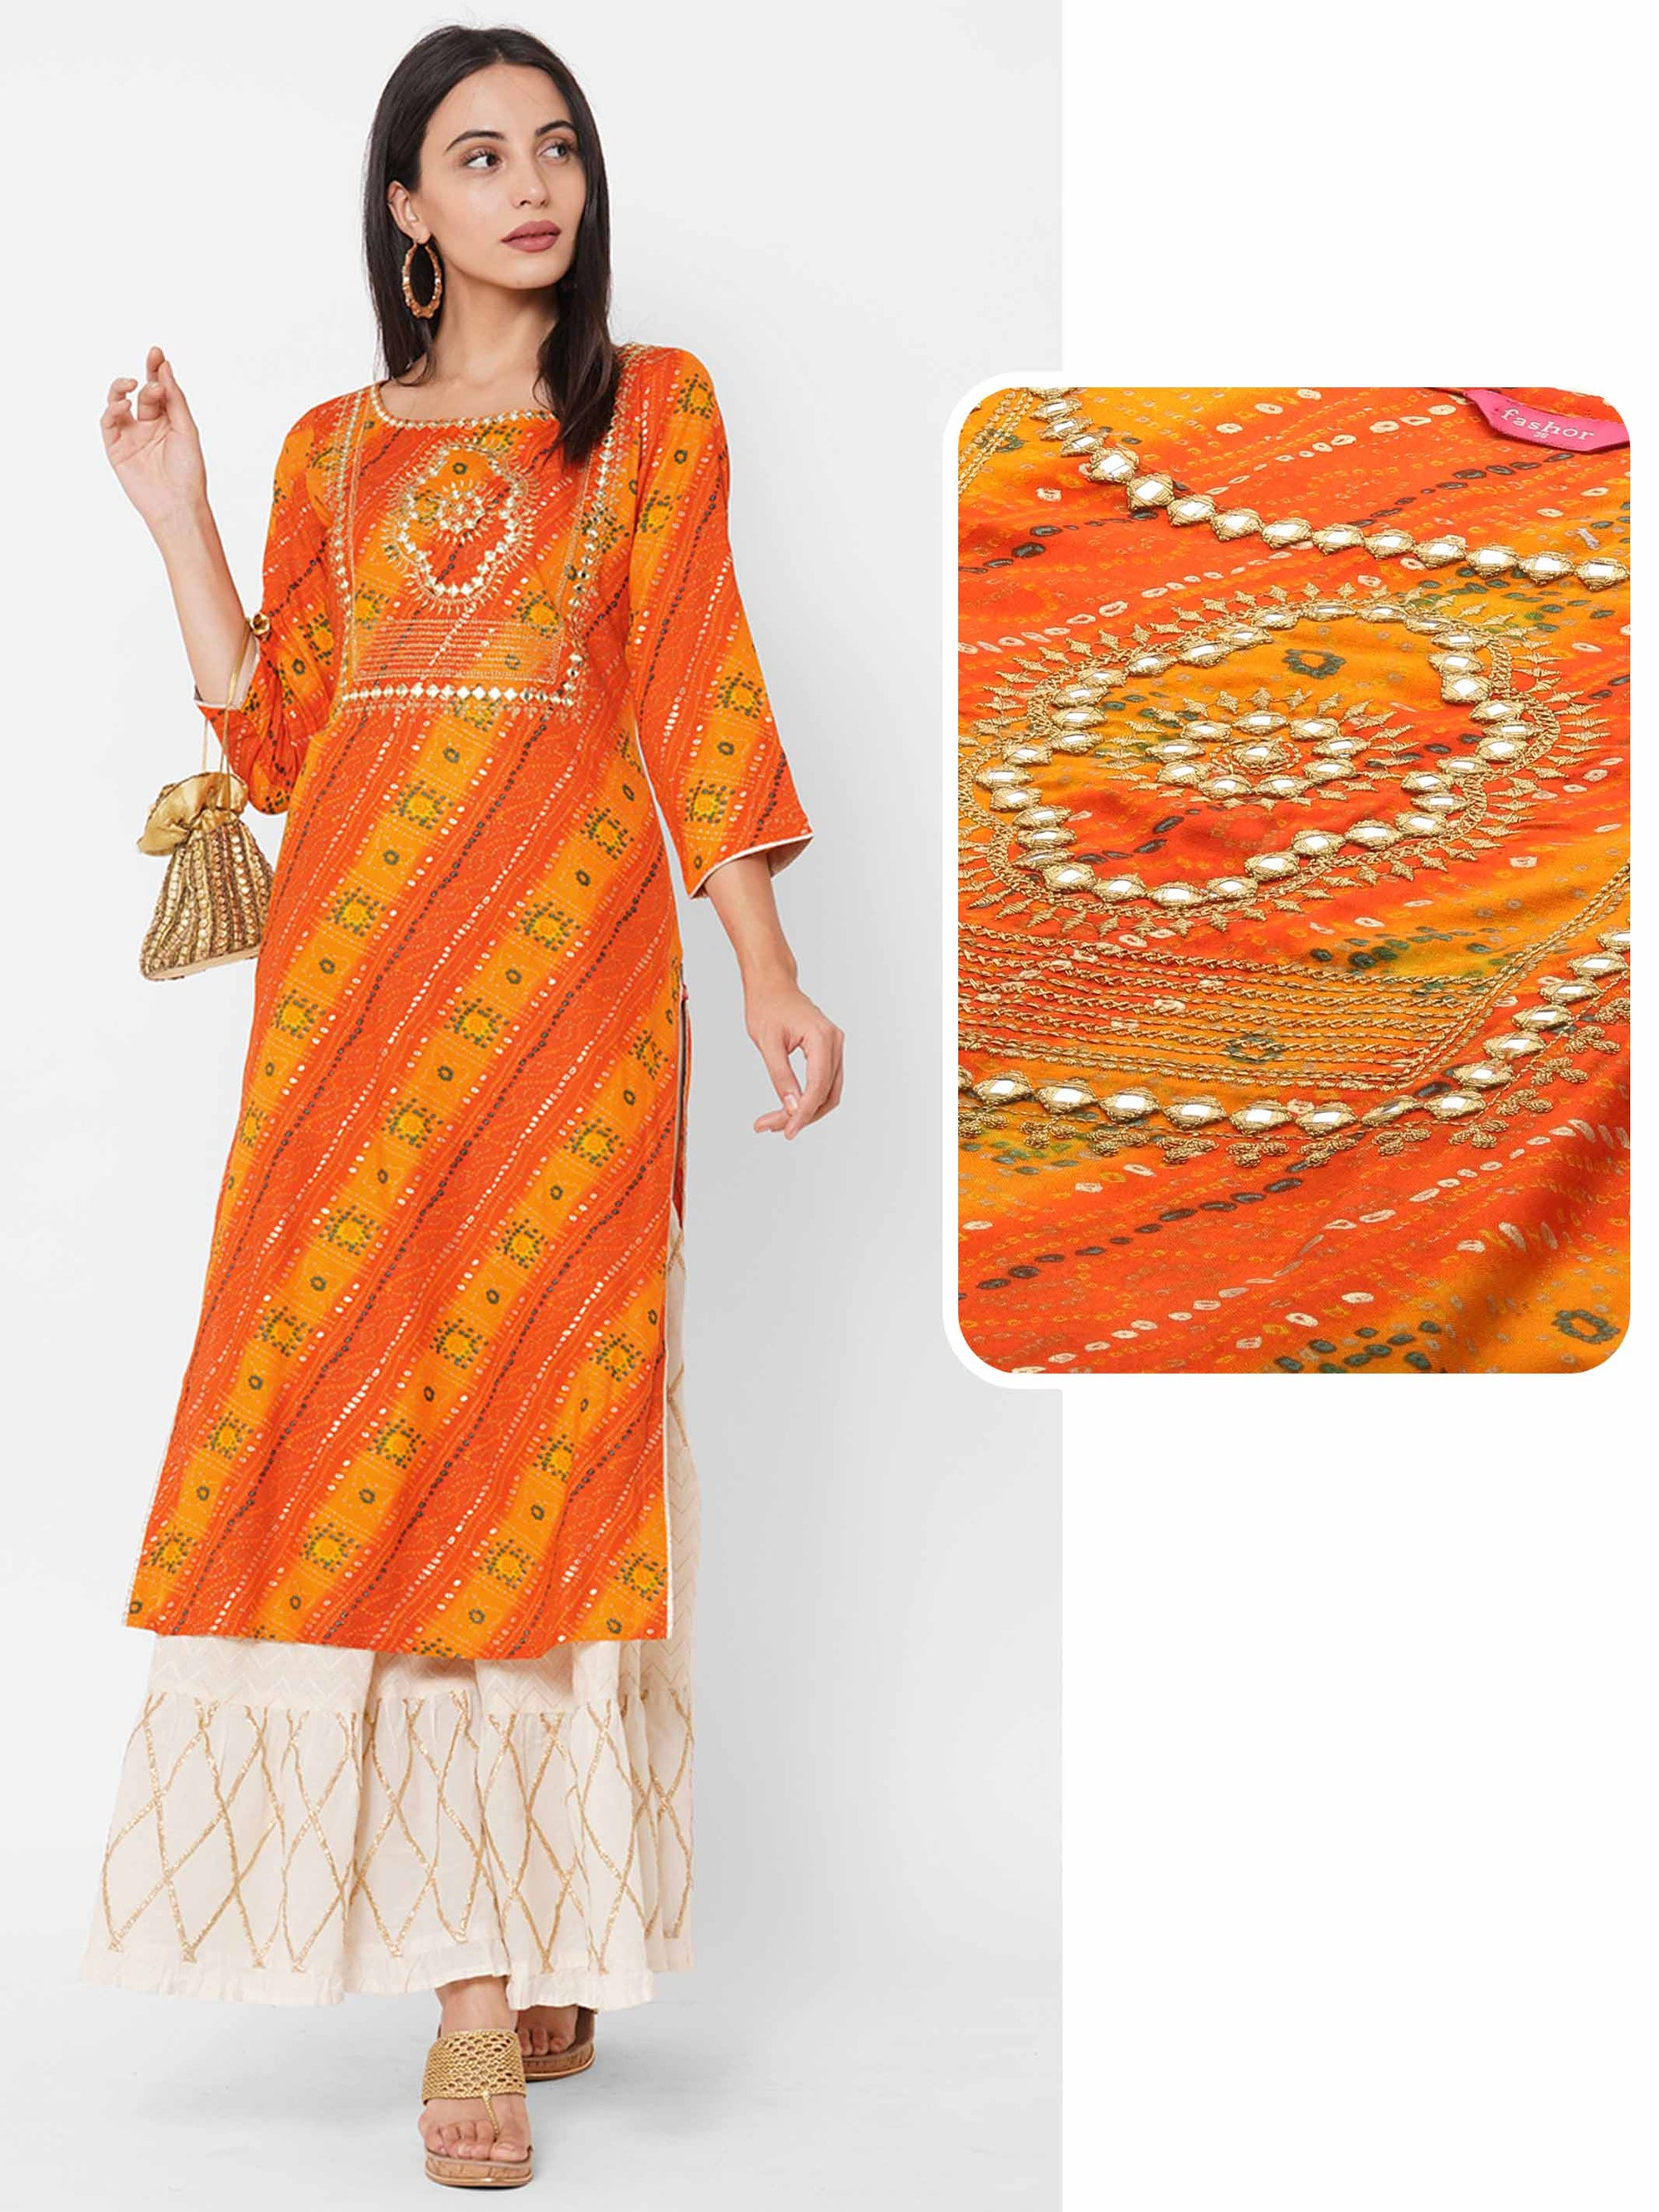 Bandhani & Lehariya Printed & Zari Embroidered Straight Kurta - Orange